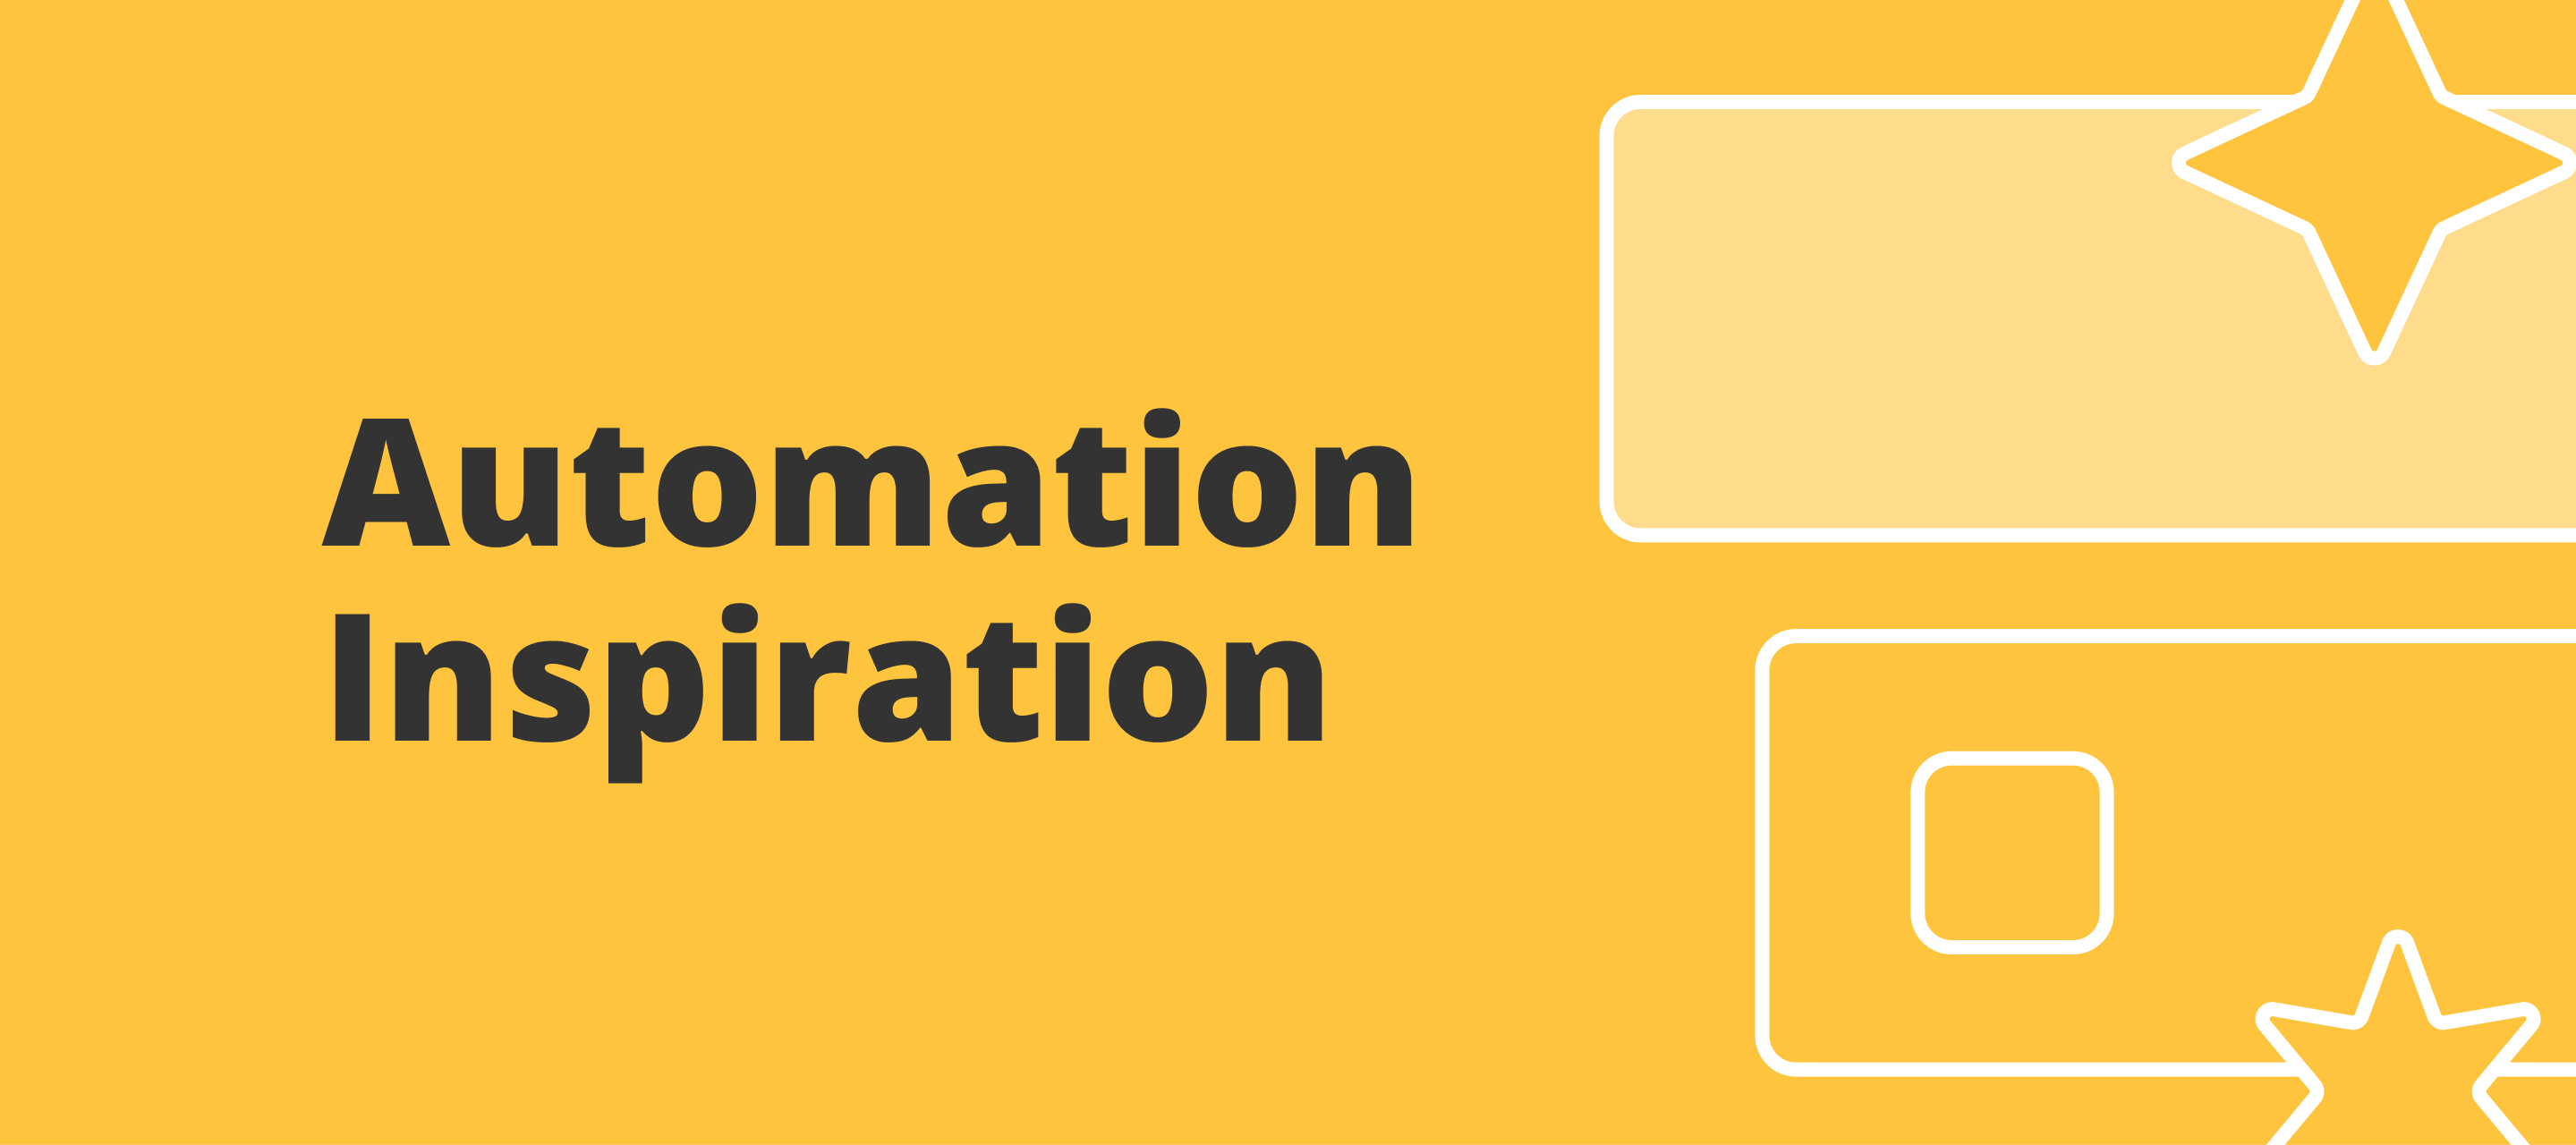 Automate your OOO: Stop sending out of office reminders